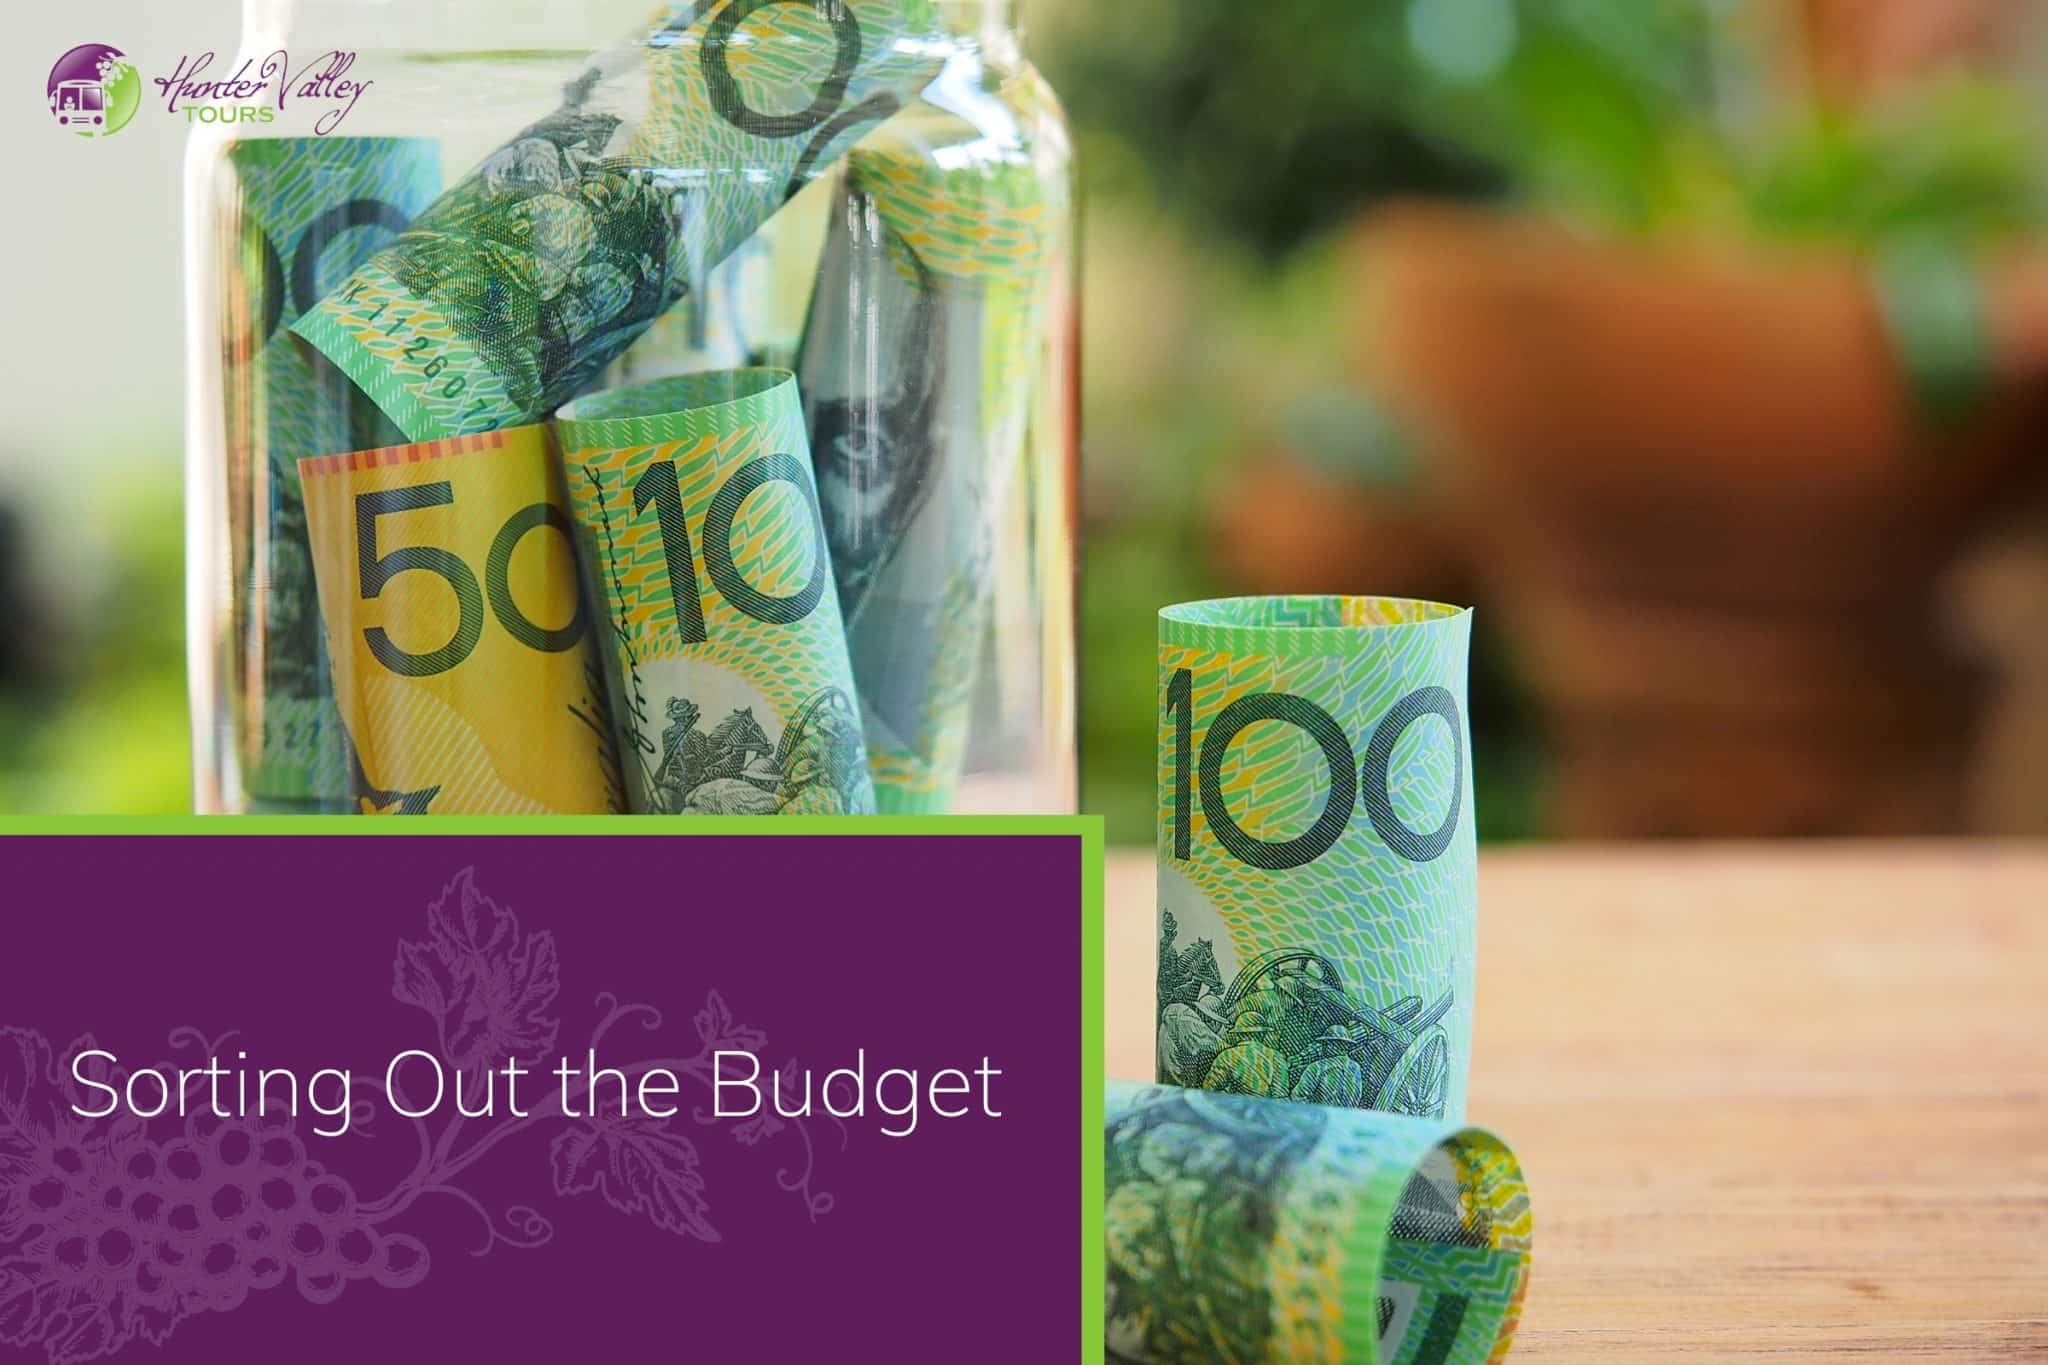 Sorting Out the Budget